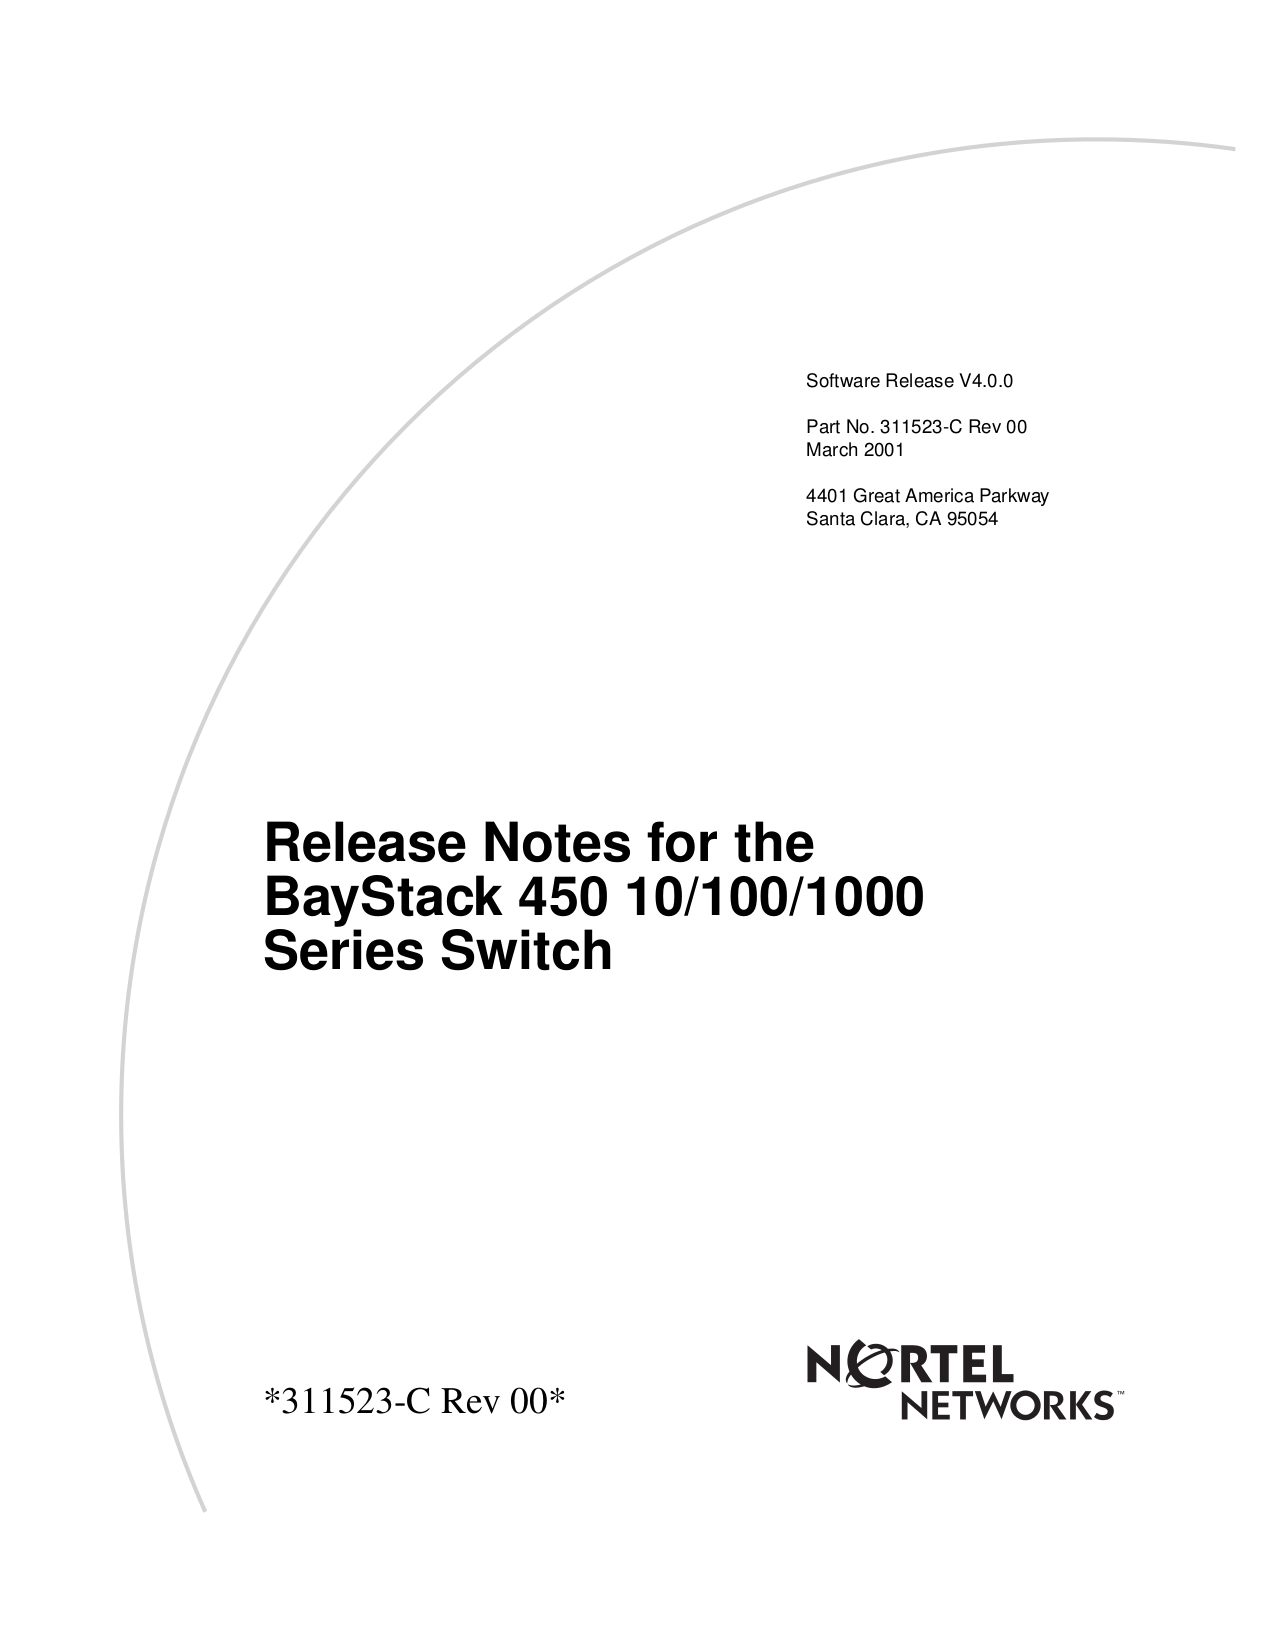 pdf for Nortel Switch BayStack 400-S manual